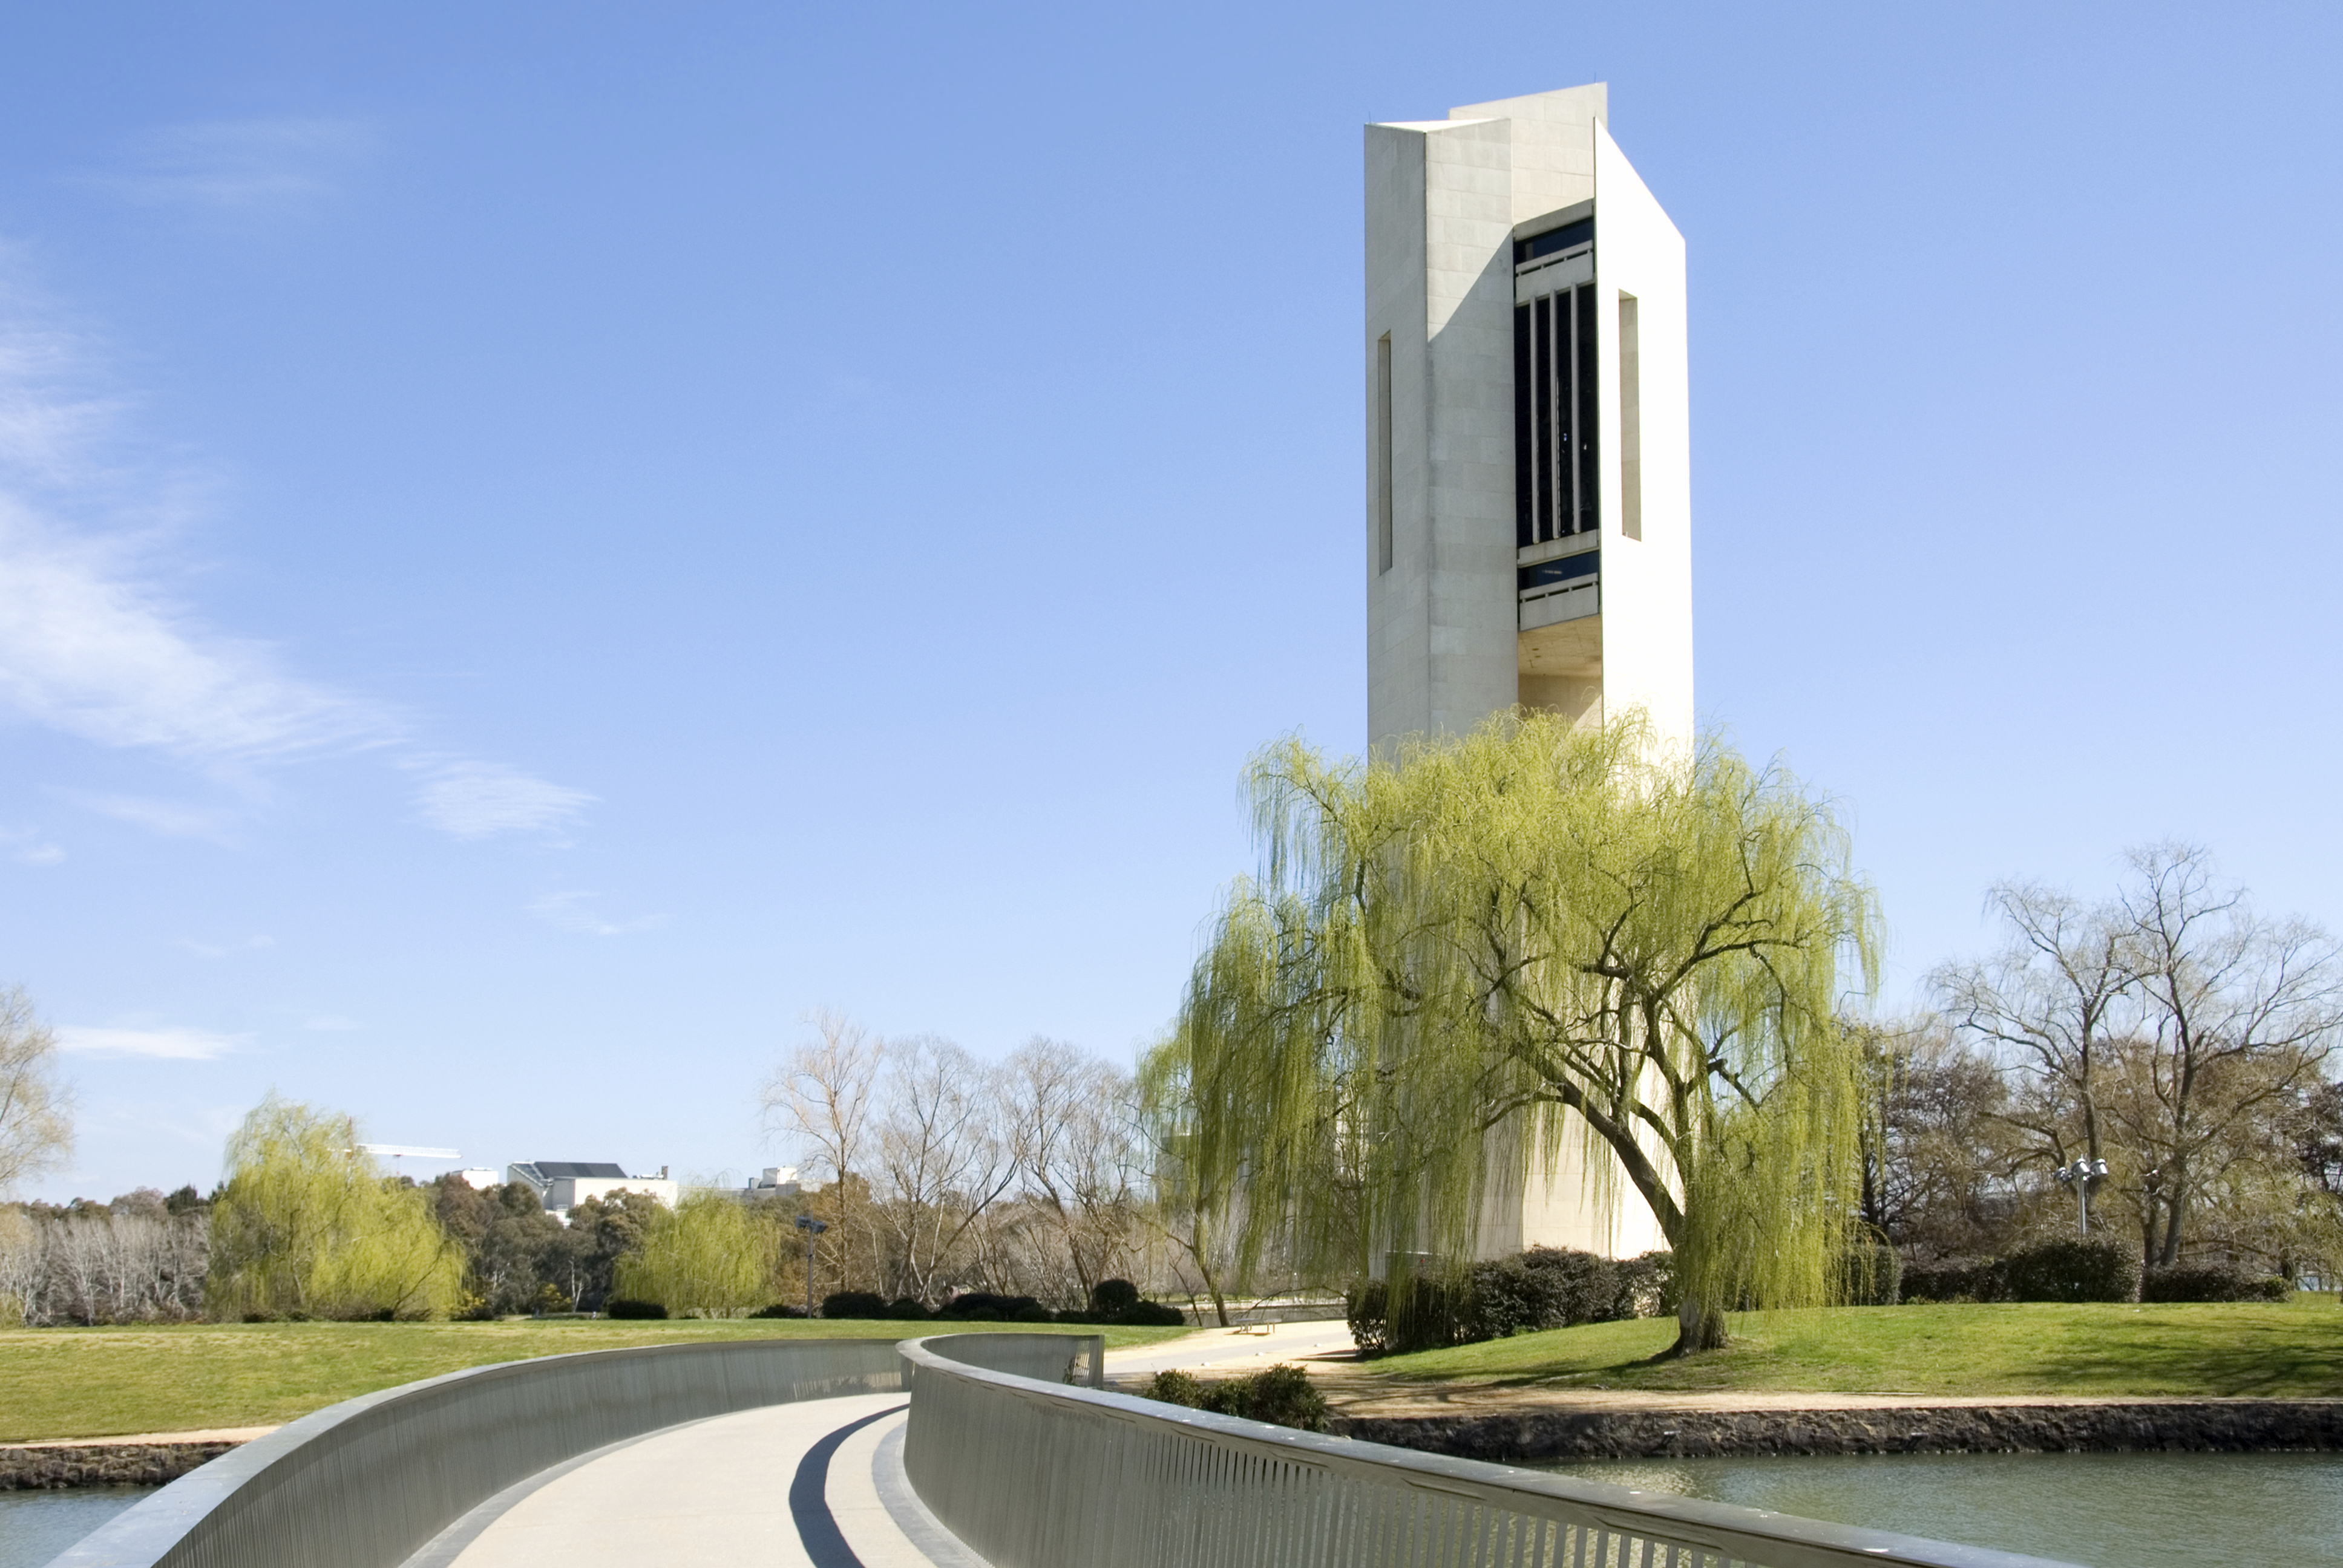 The National Carillion, Canberra